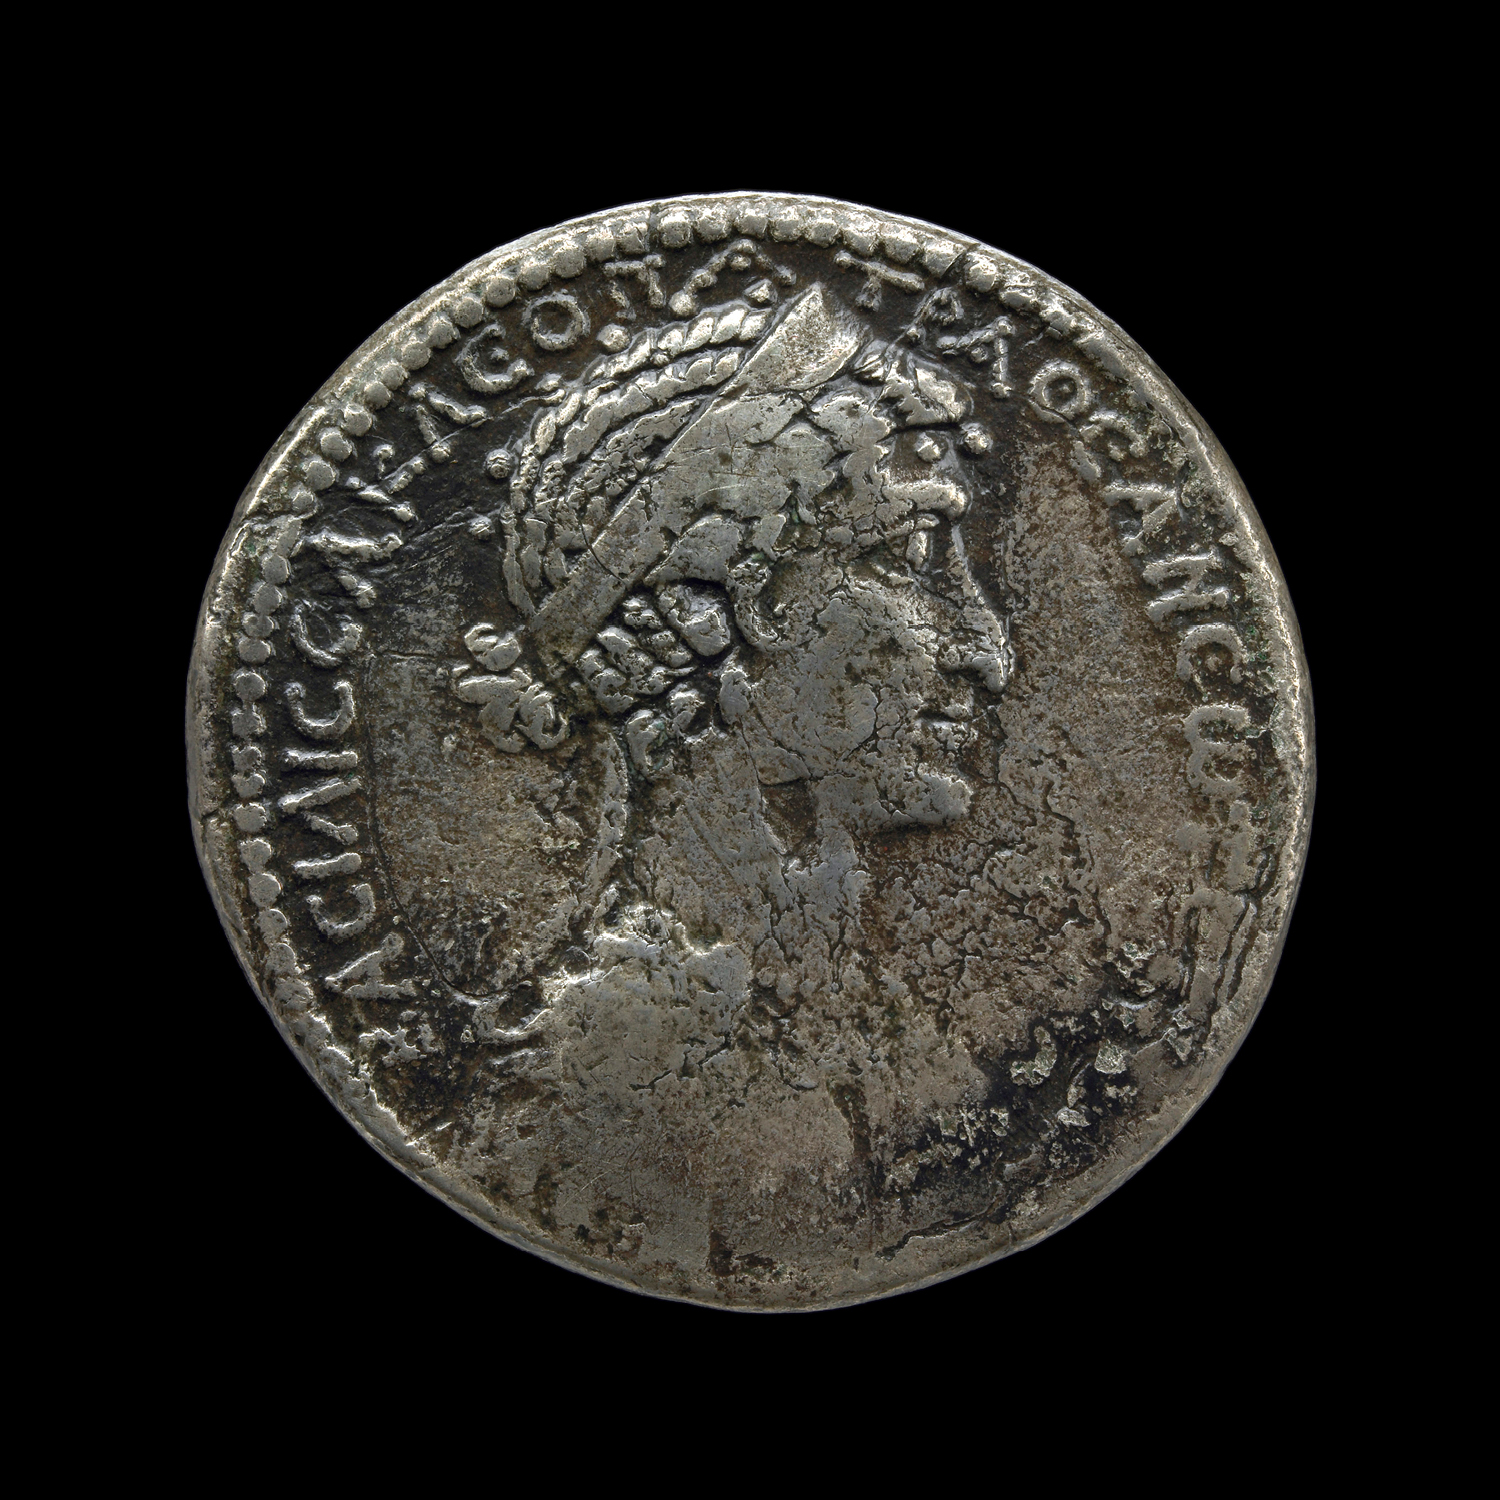 Cleopatra Coin from the British Museum